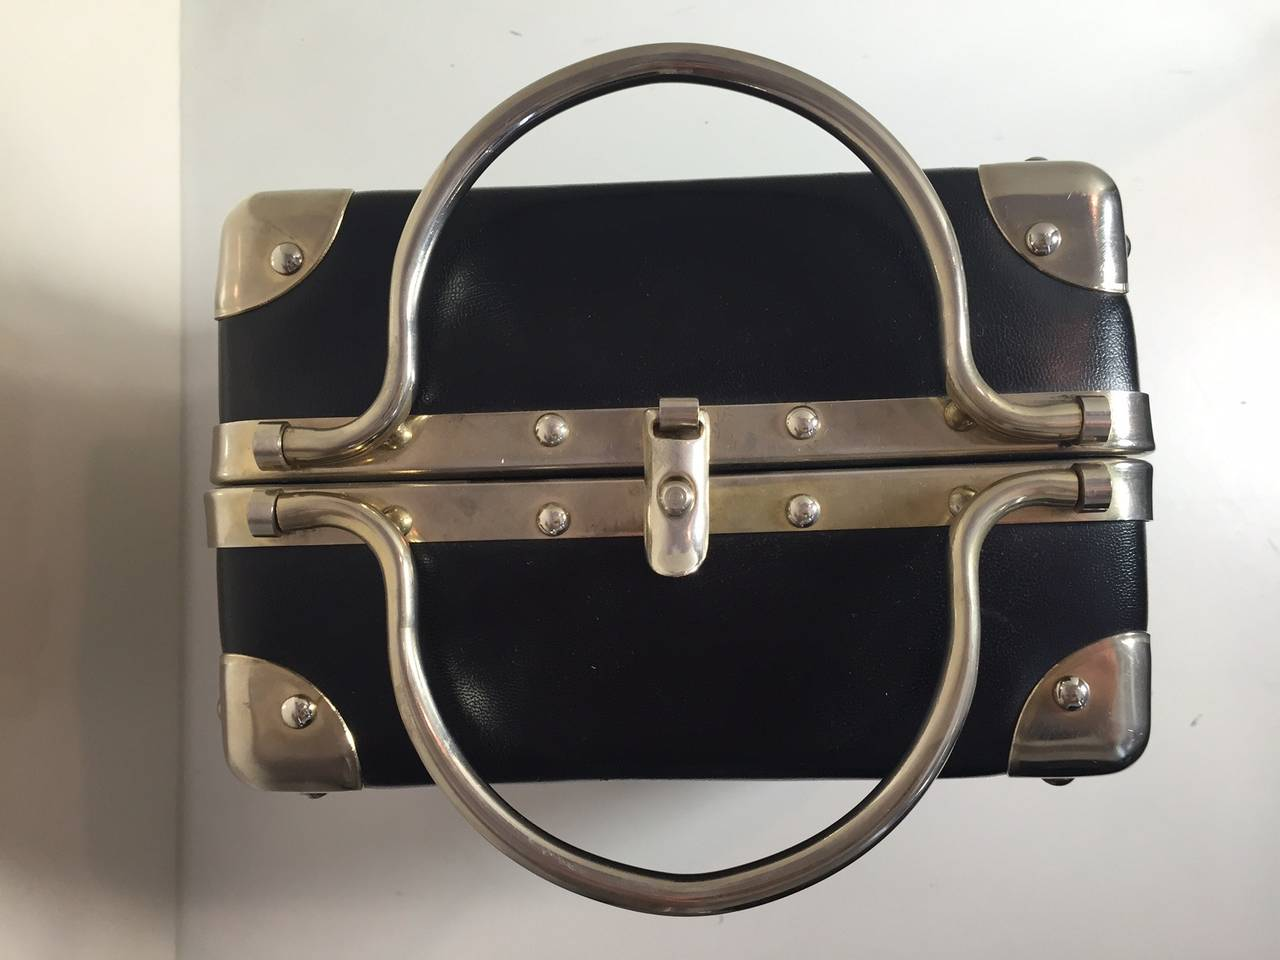 1960s Black Vinyl Suitcase Style Box Bag With Chrome